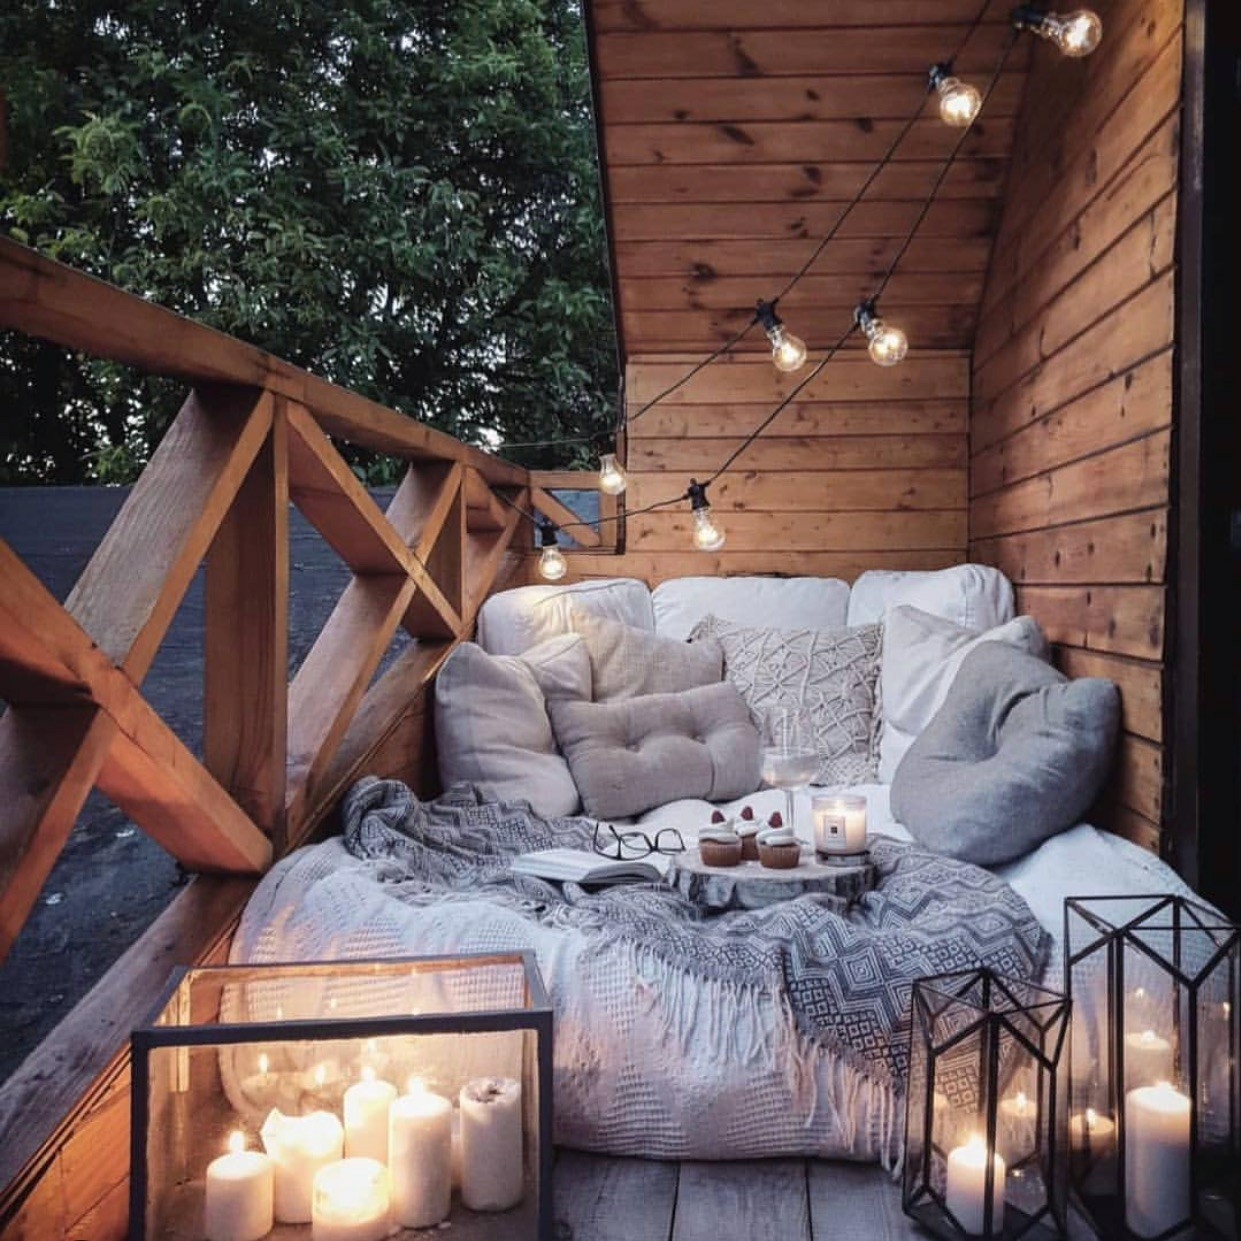 Country House, balcony, camping and candles